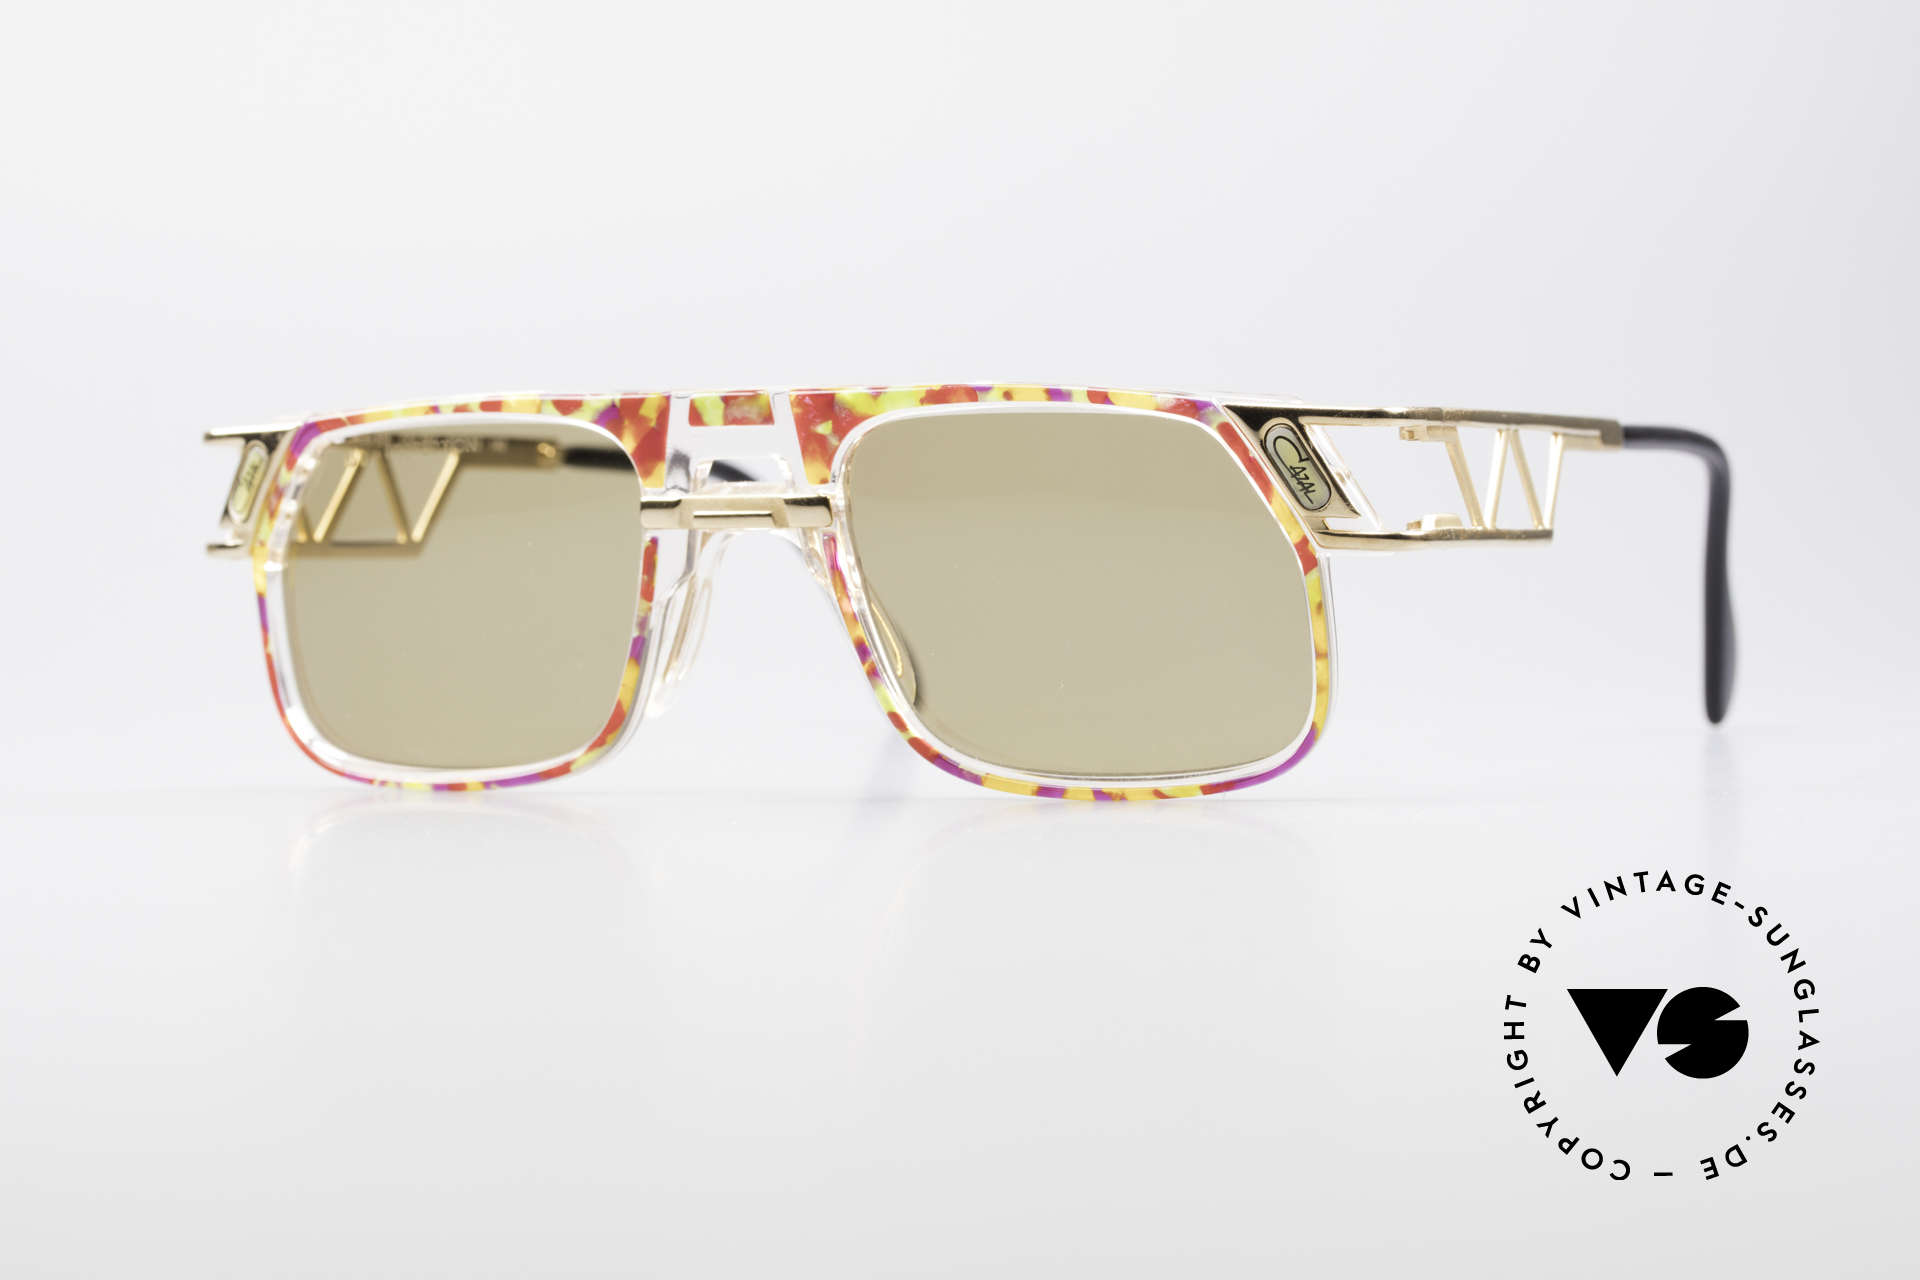 Cazal 876 90's Designer Vintage Frame, hip Cazal designer sunglasses of the early / mid 1990's, Made for Men and Women